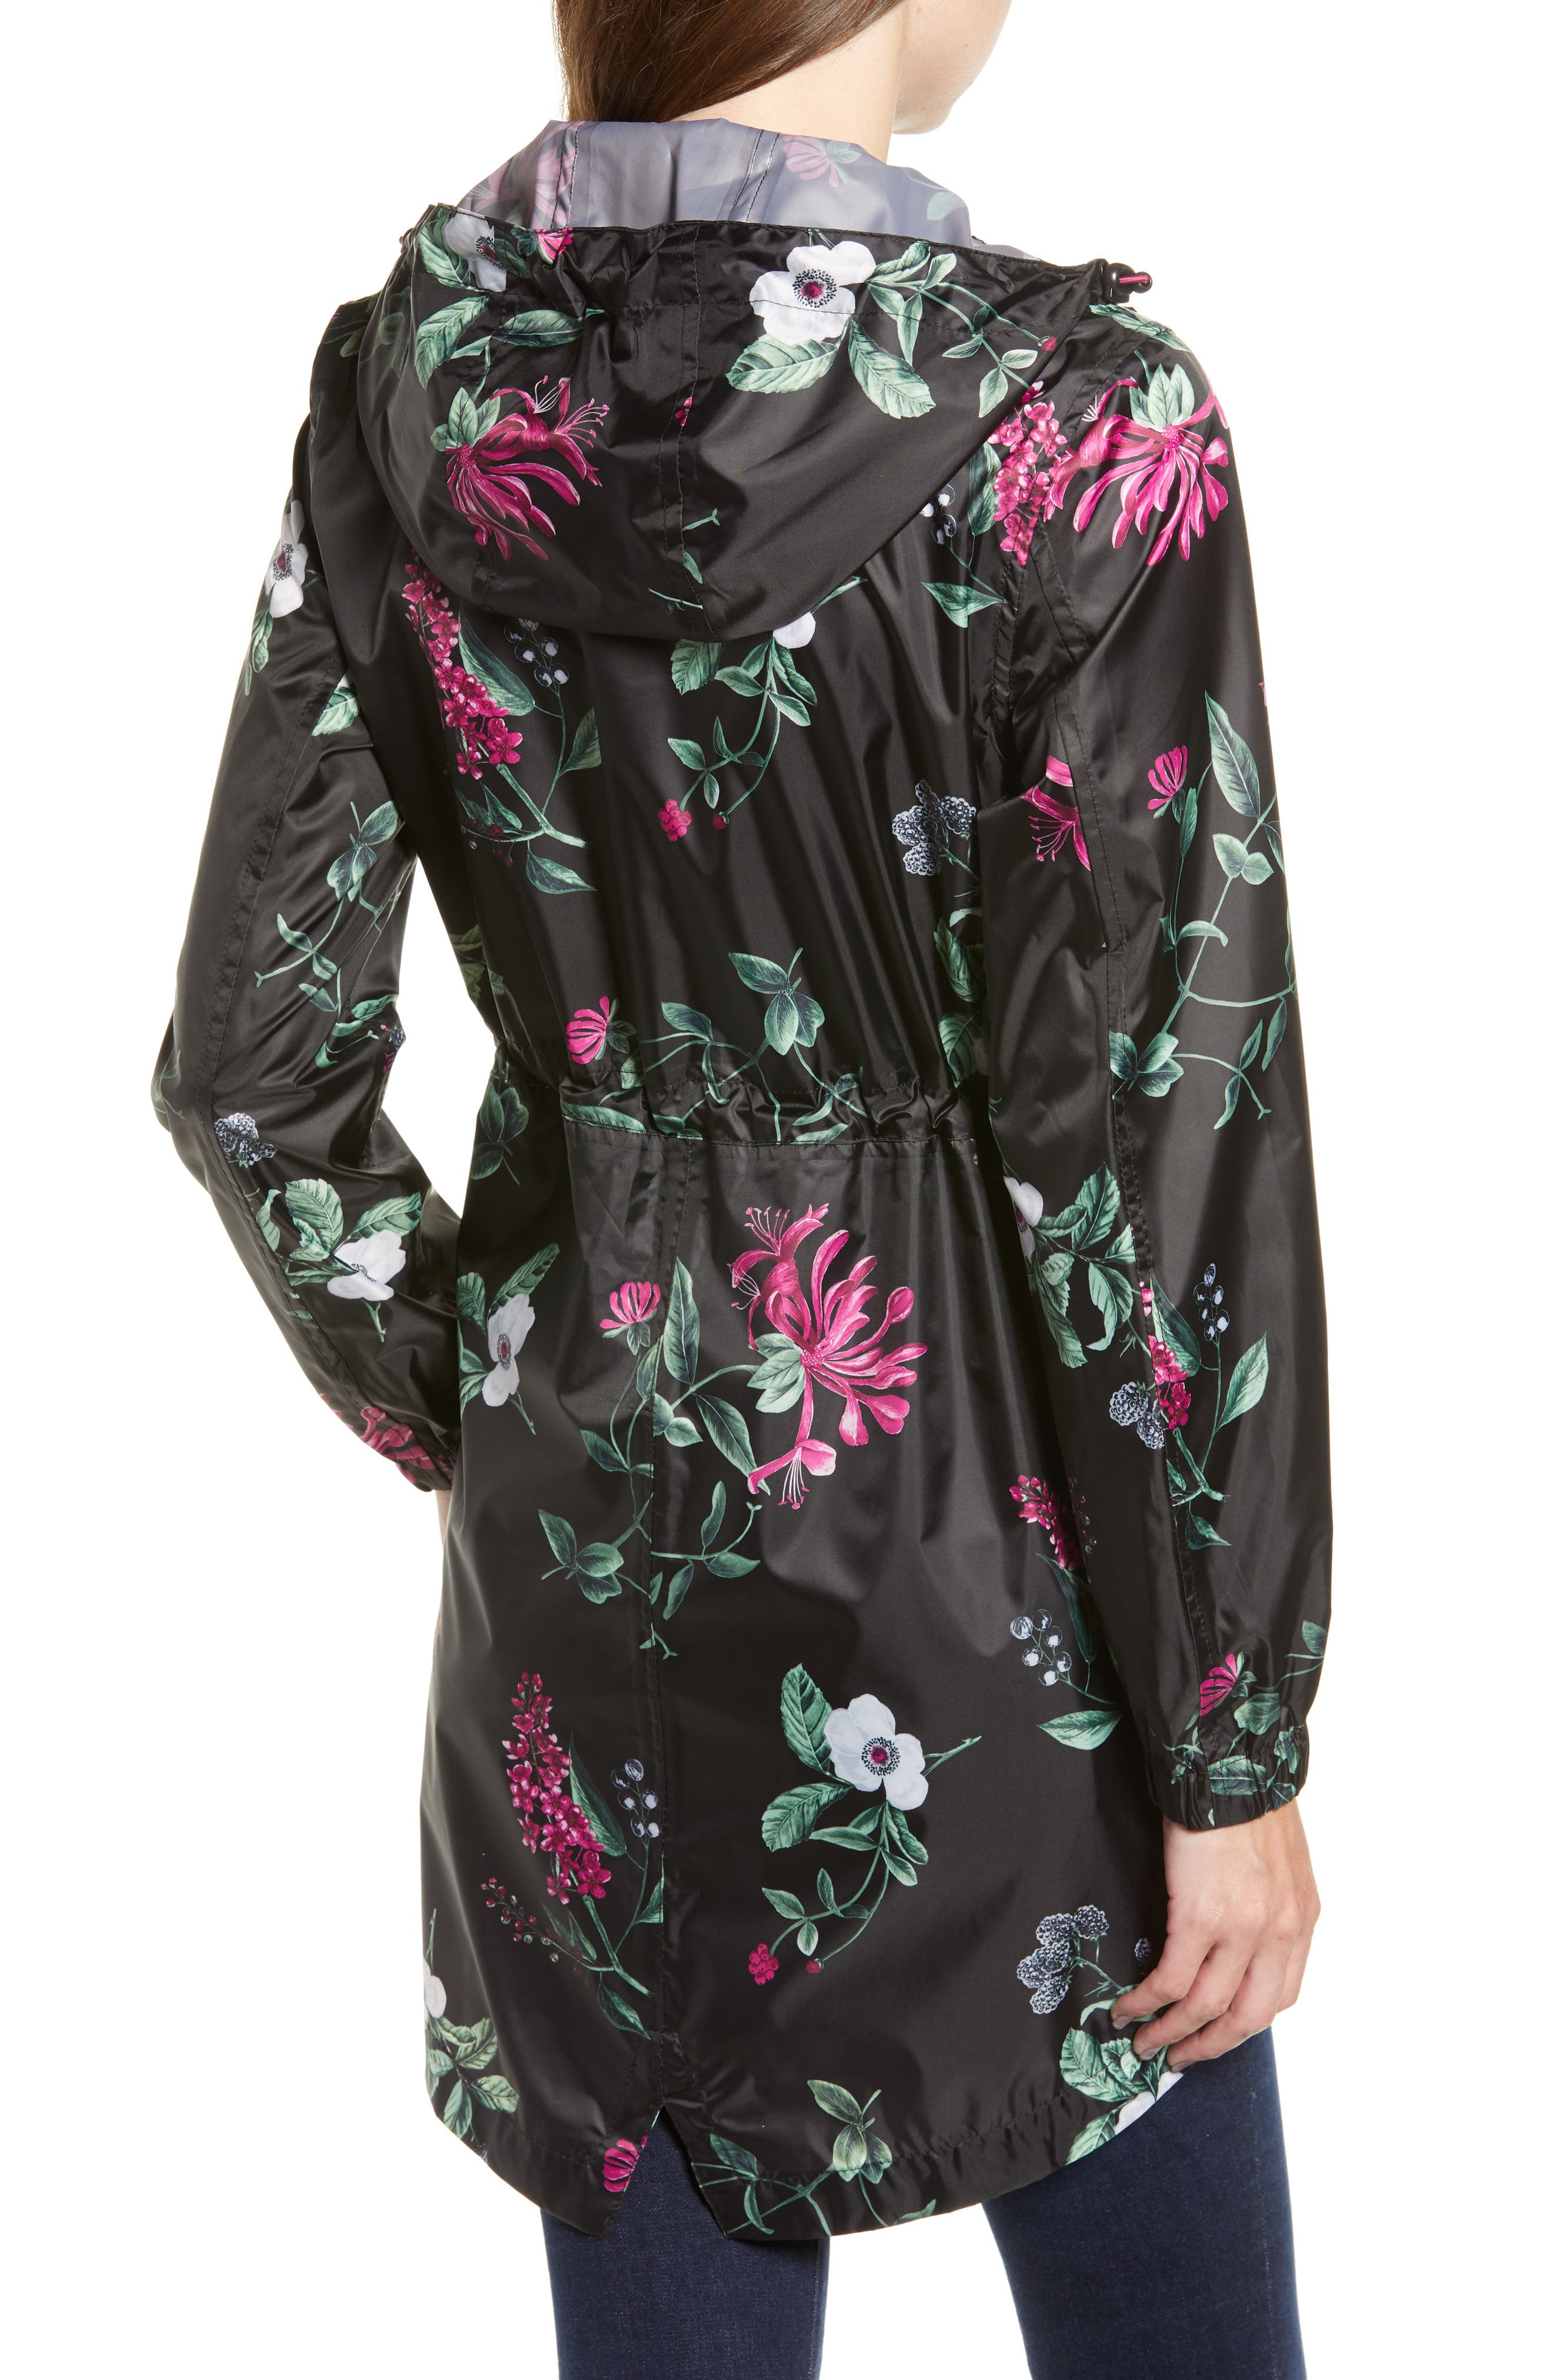 Right as Rain Packable Print Hooded Raincoat,                             Alternate thumbnail 2, color,                             BLACK HEDGEROW